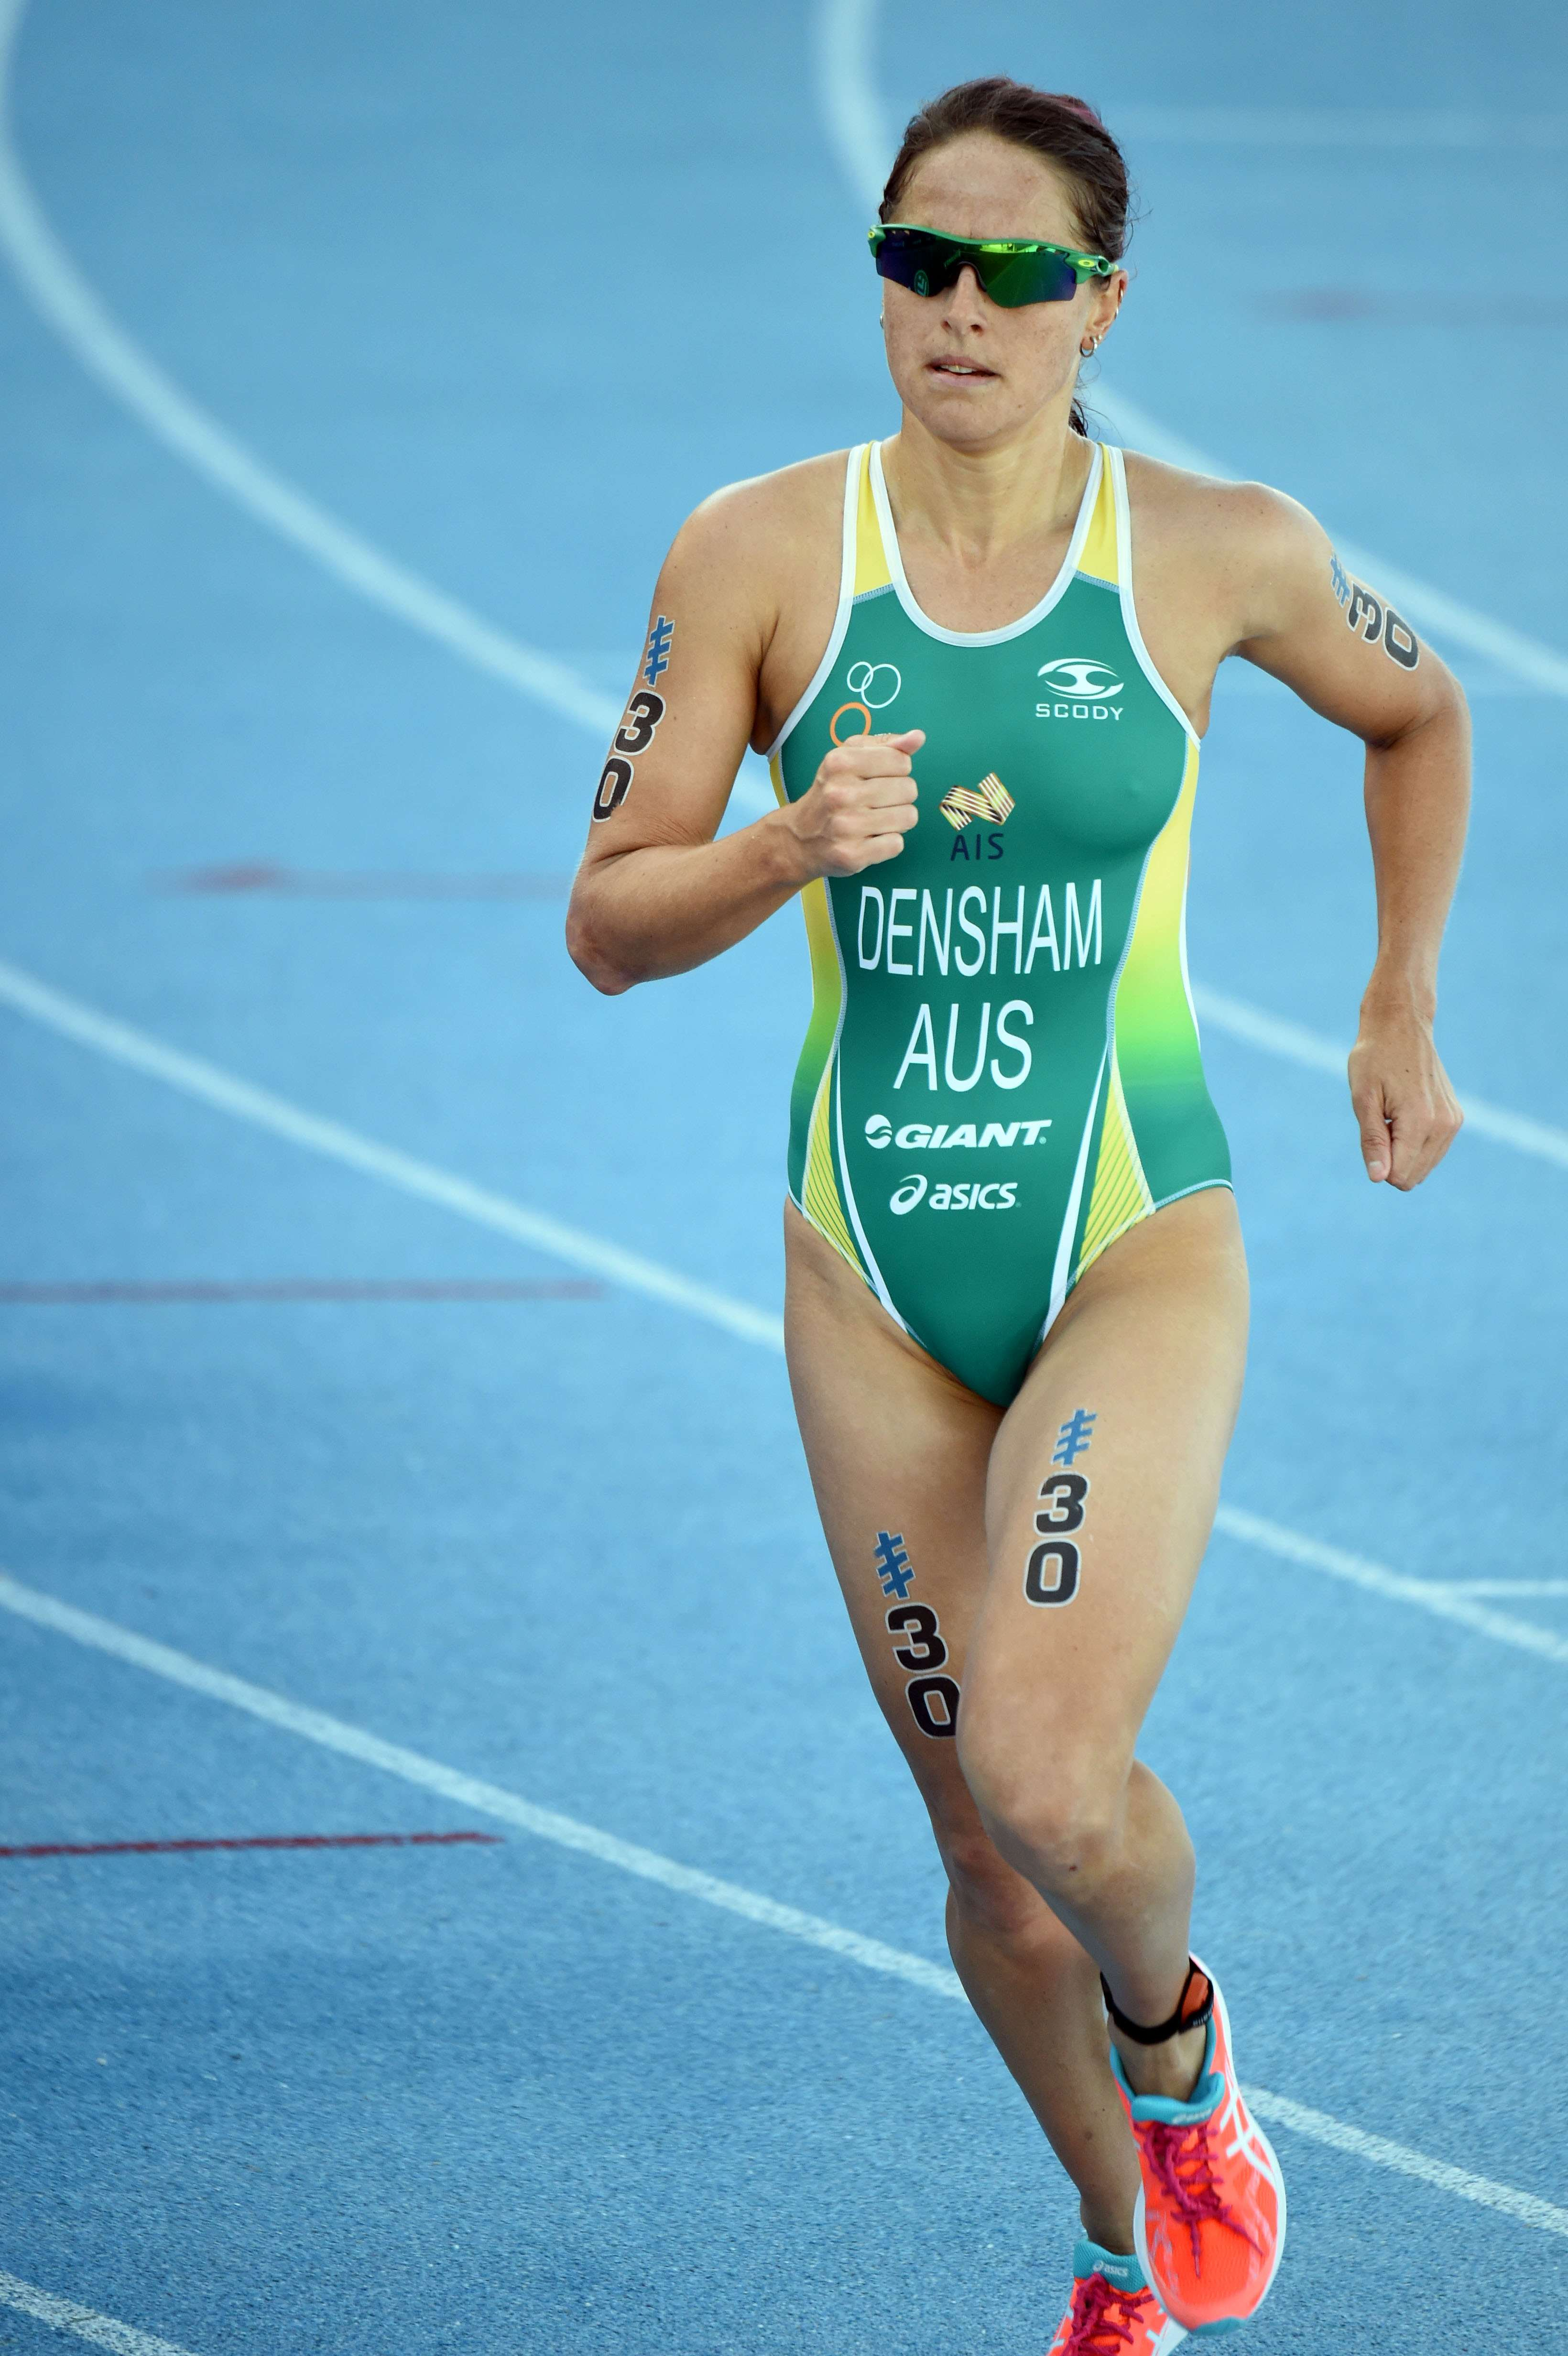 RIO caling to bring out best in Aussie athletes